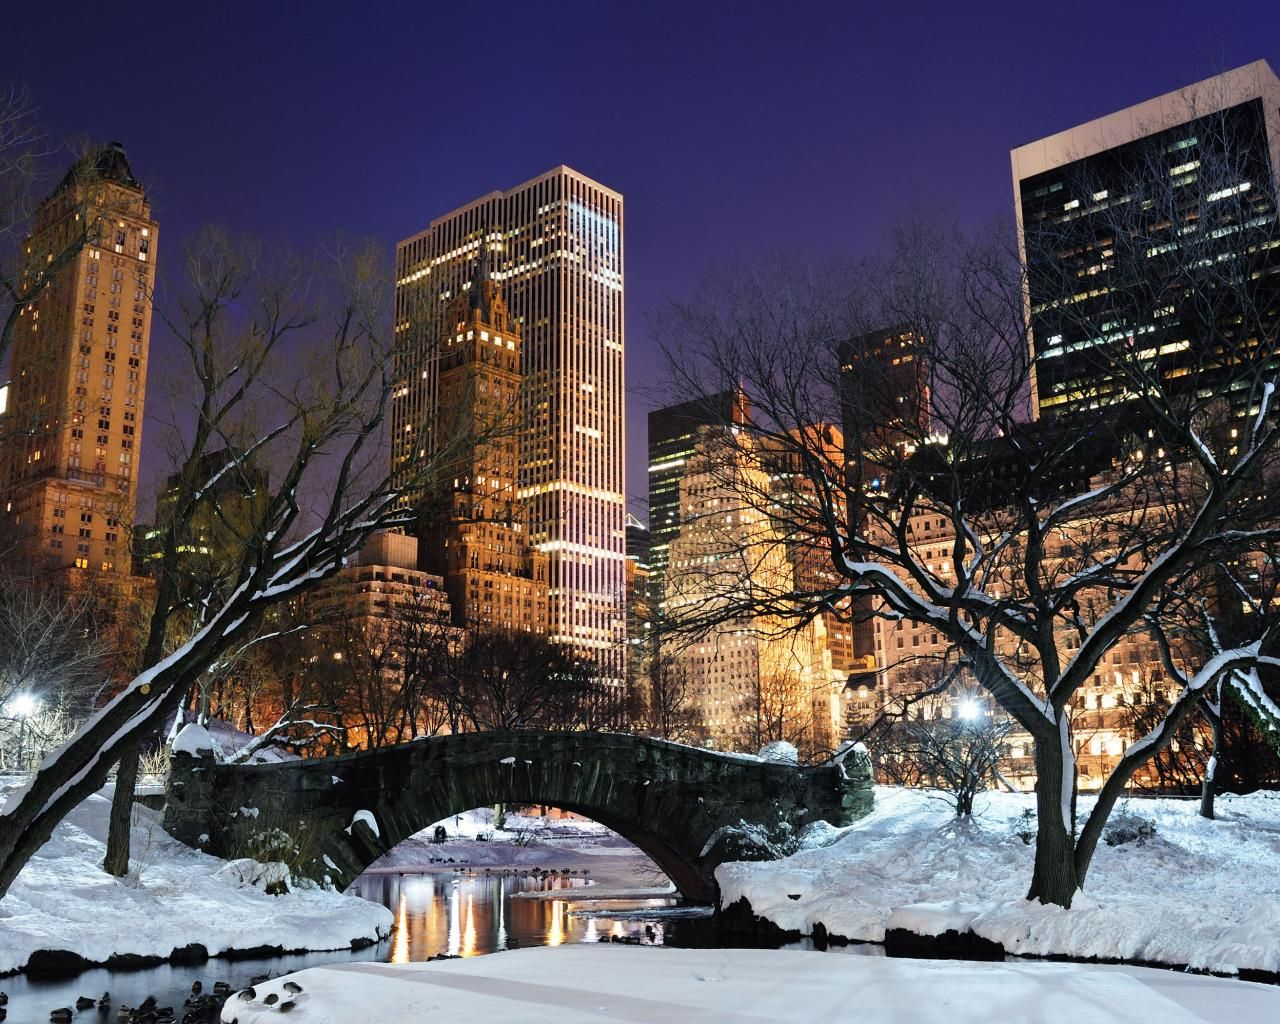 Nyc at night central park central park winter night nyc computer hd wallpaper 1280x1024 px - Snow night city wallpaper ...